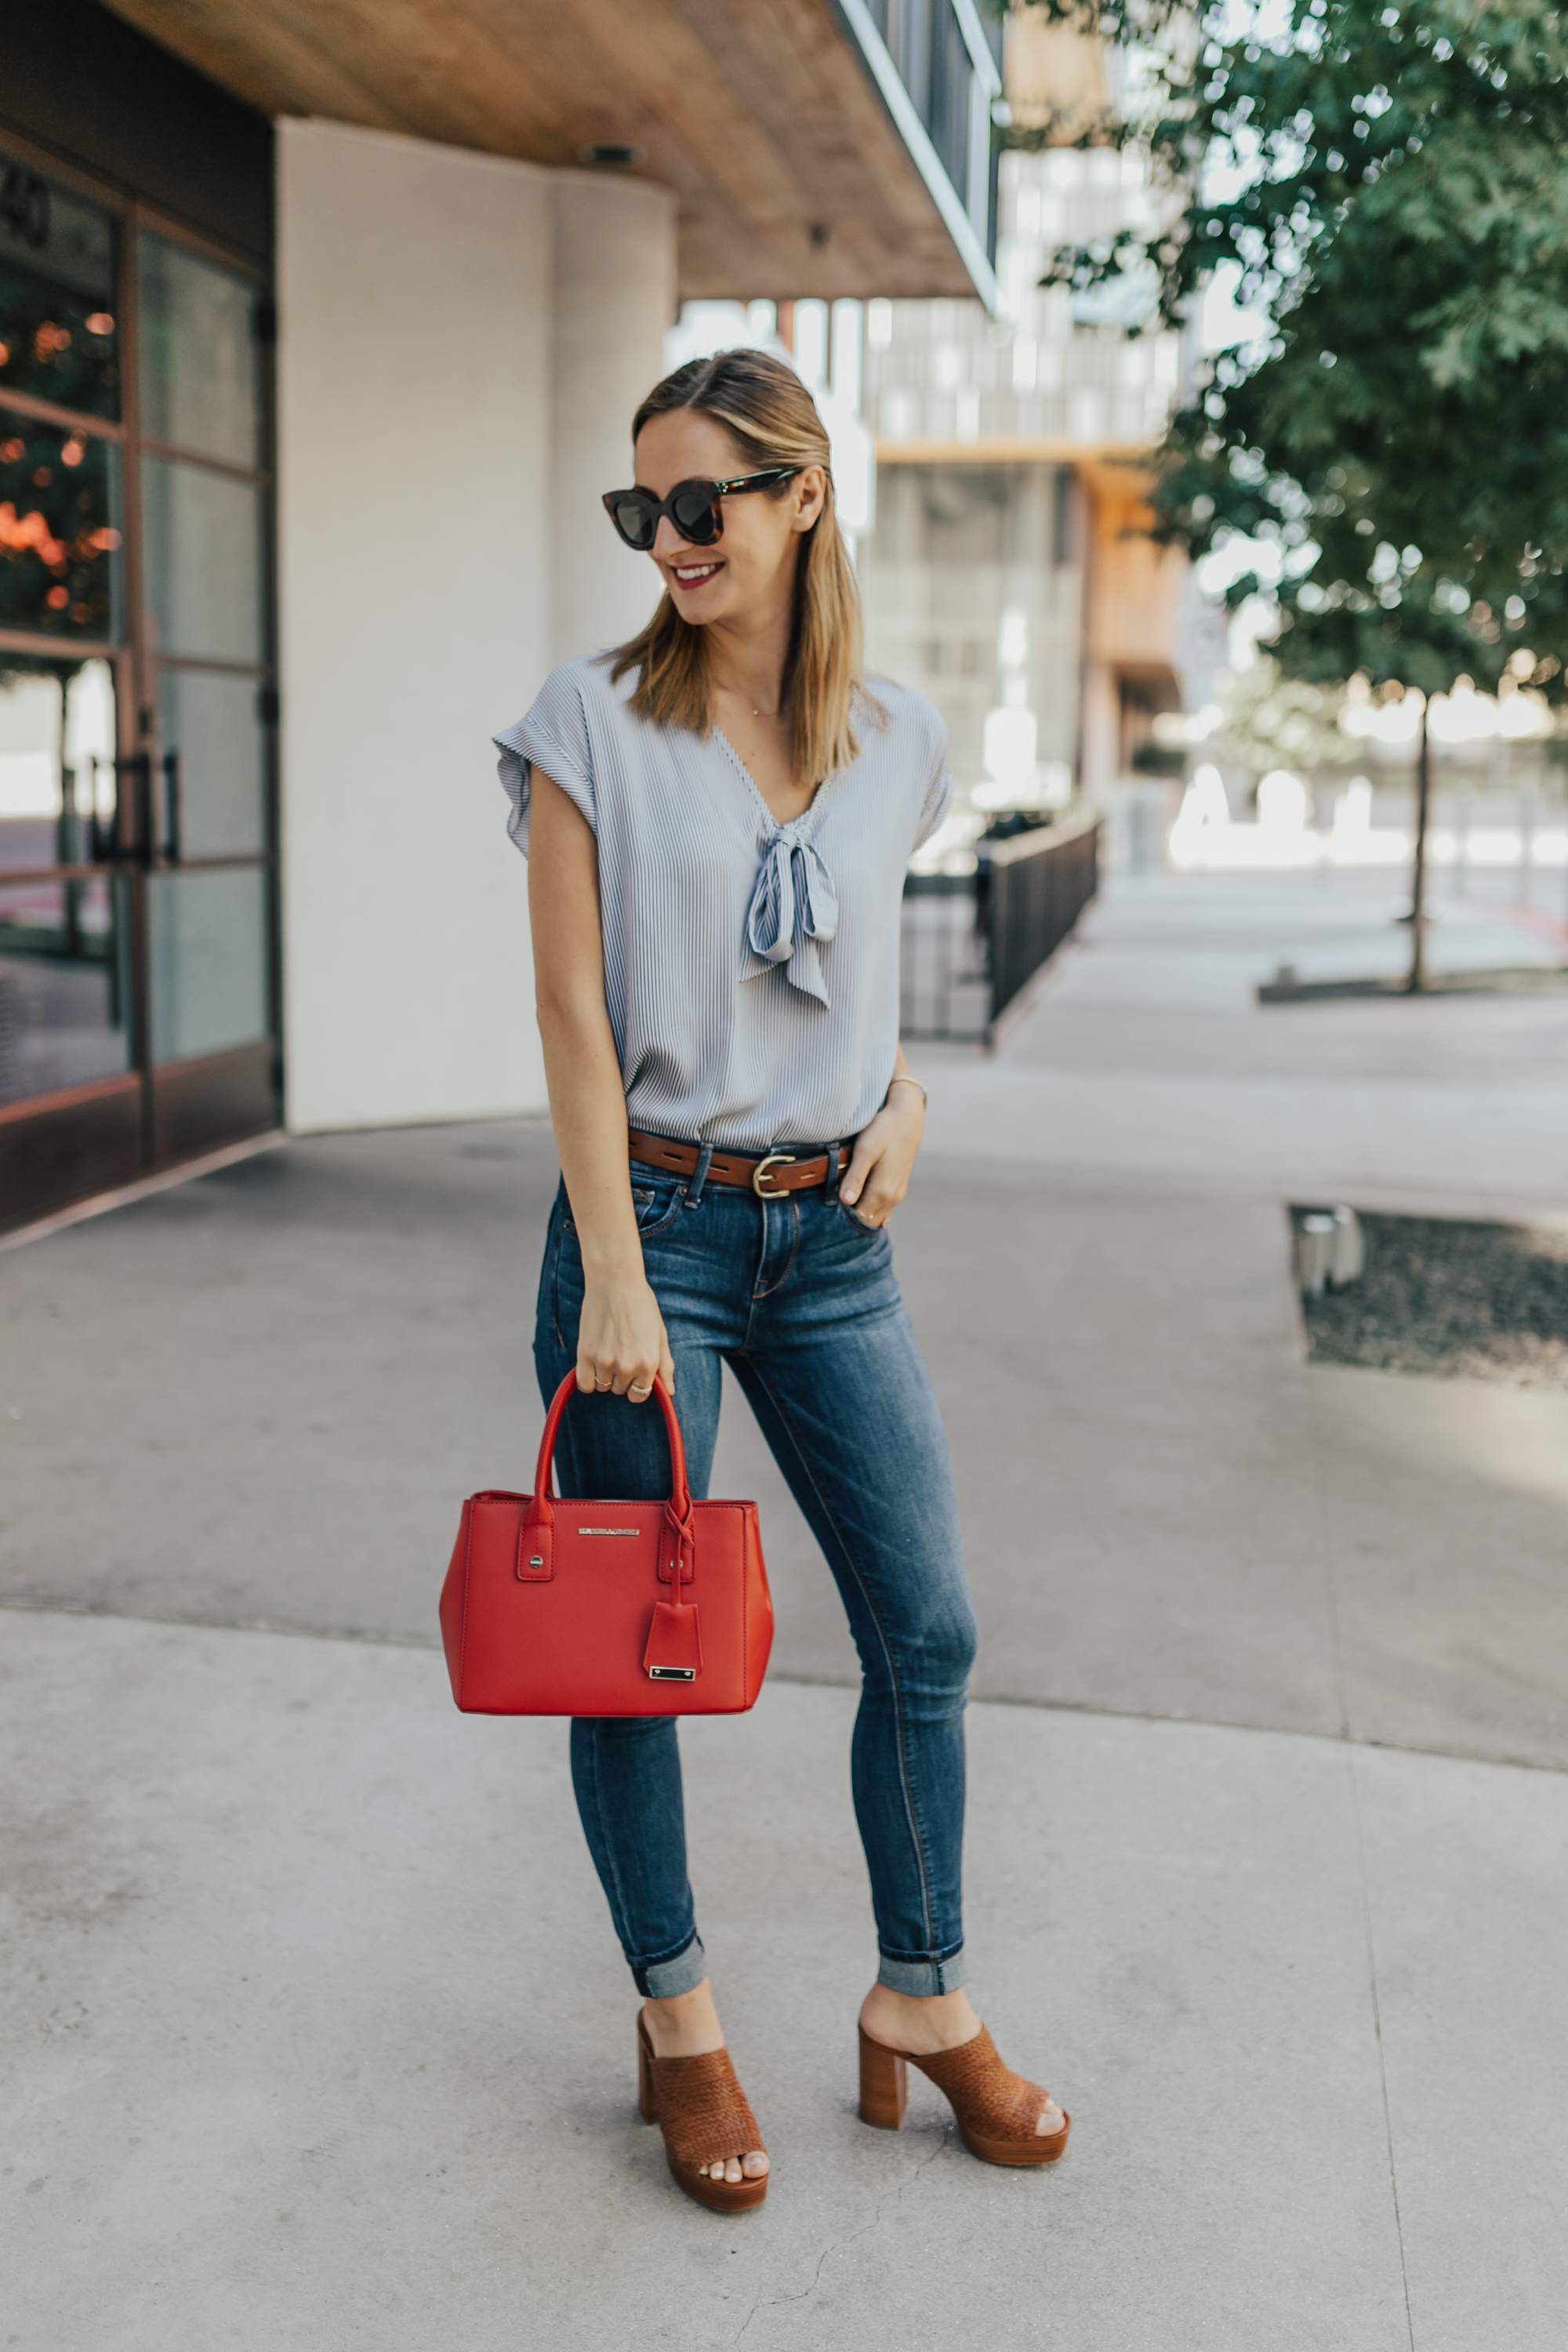 livvyland-blog-olivia-watson-new-york-and-company-striped-chiffon-top-red-handbag-austin-texas-fashion-blogger-4